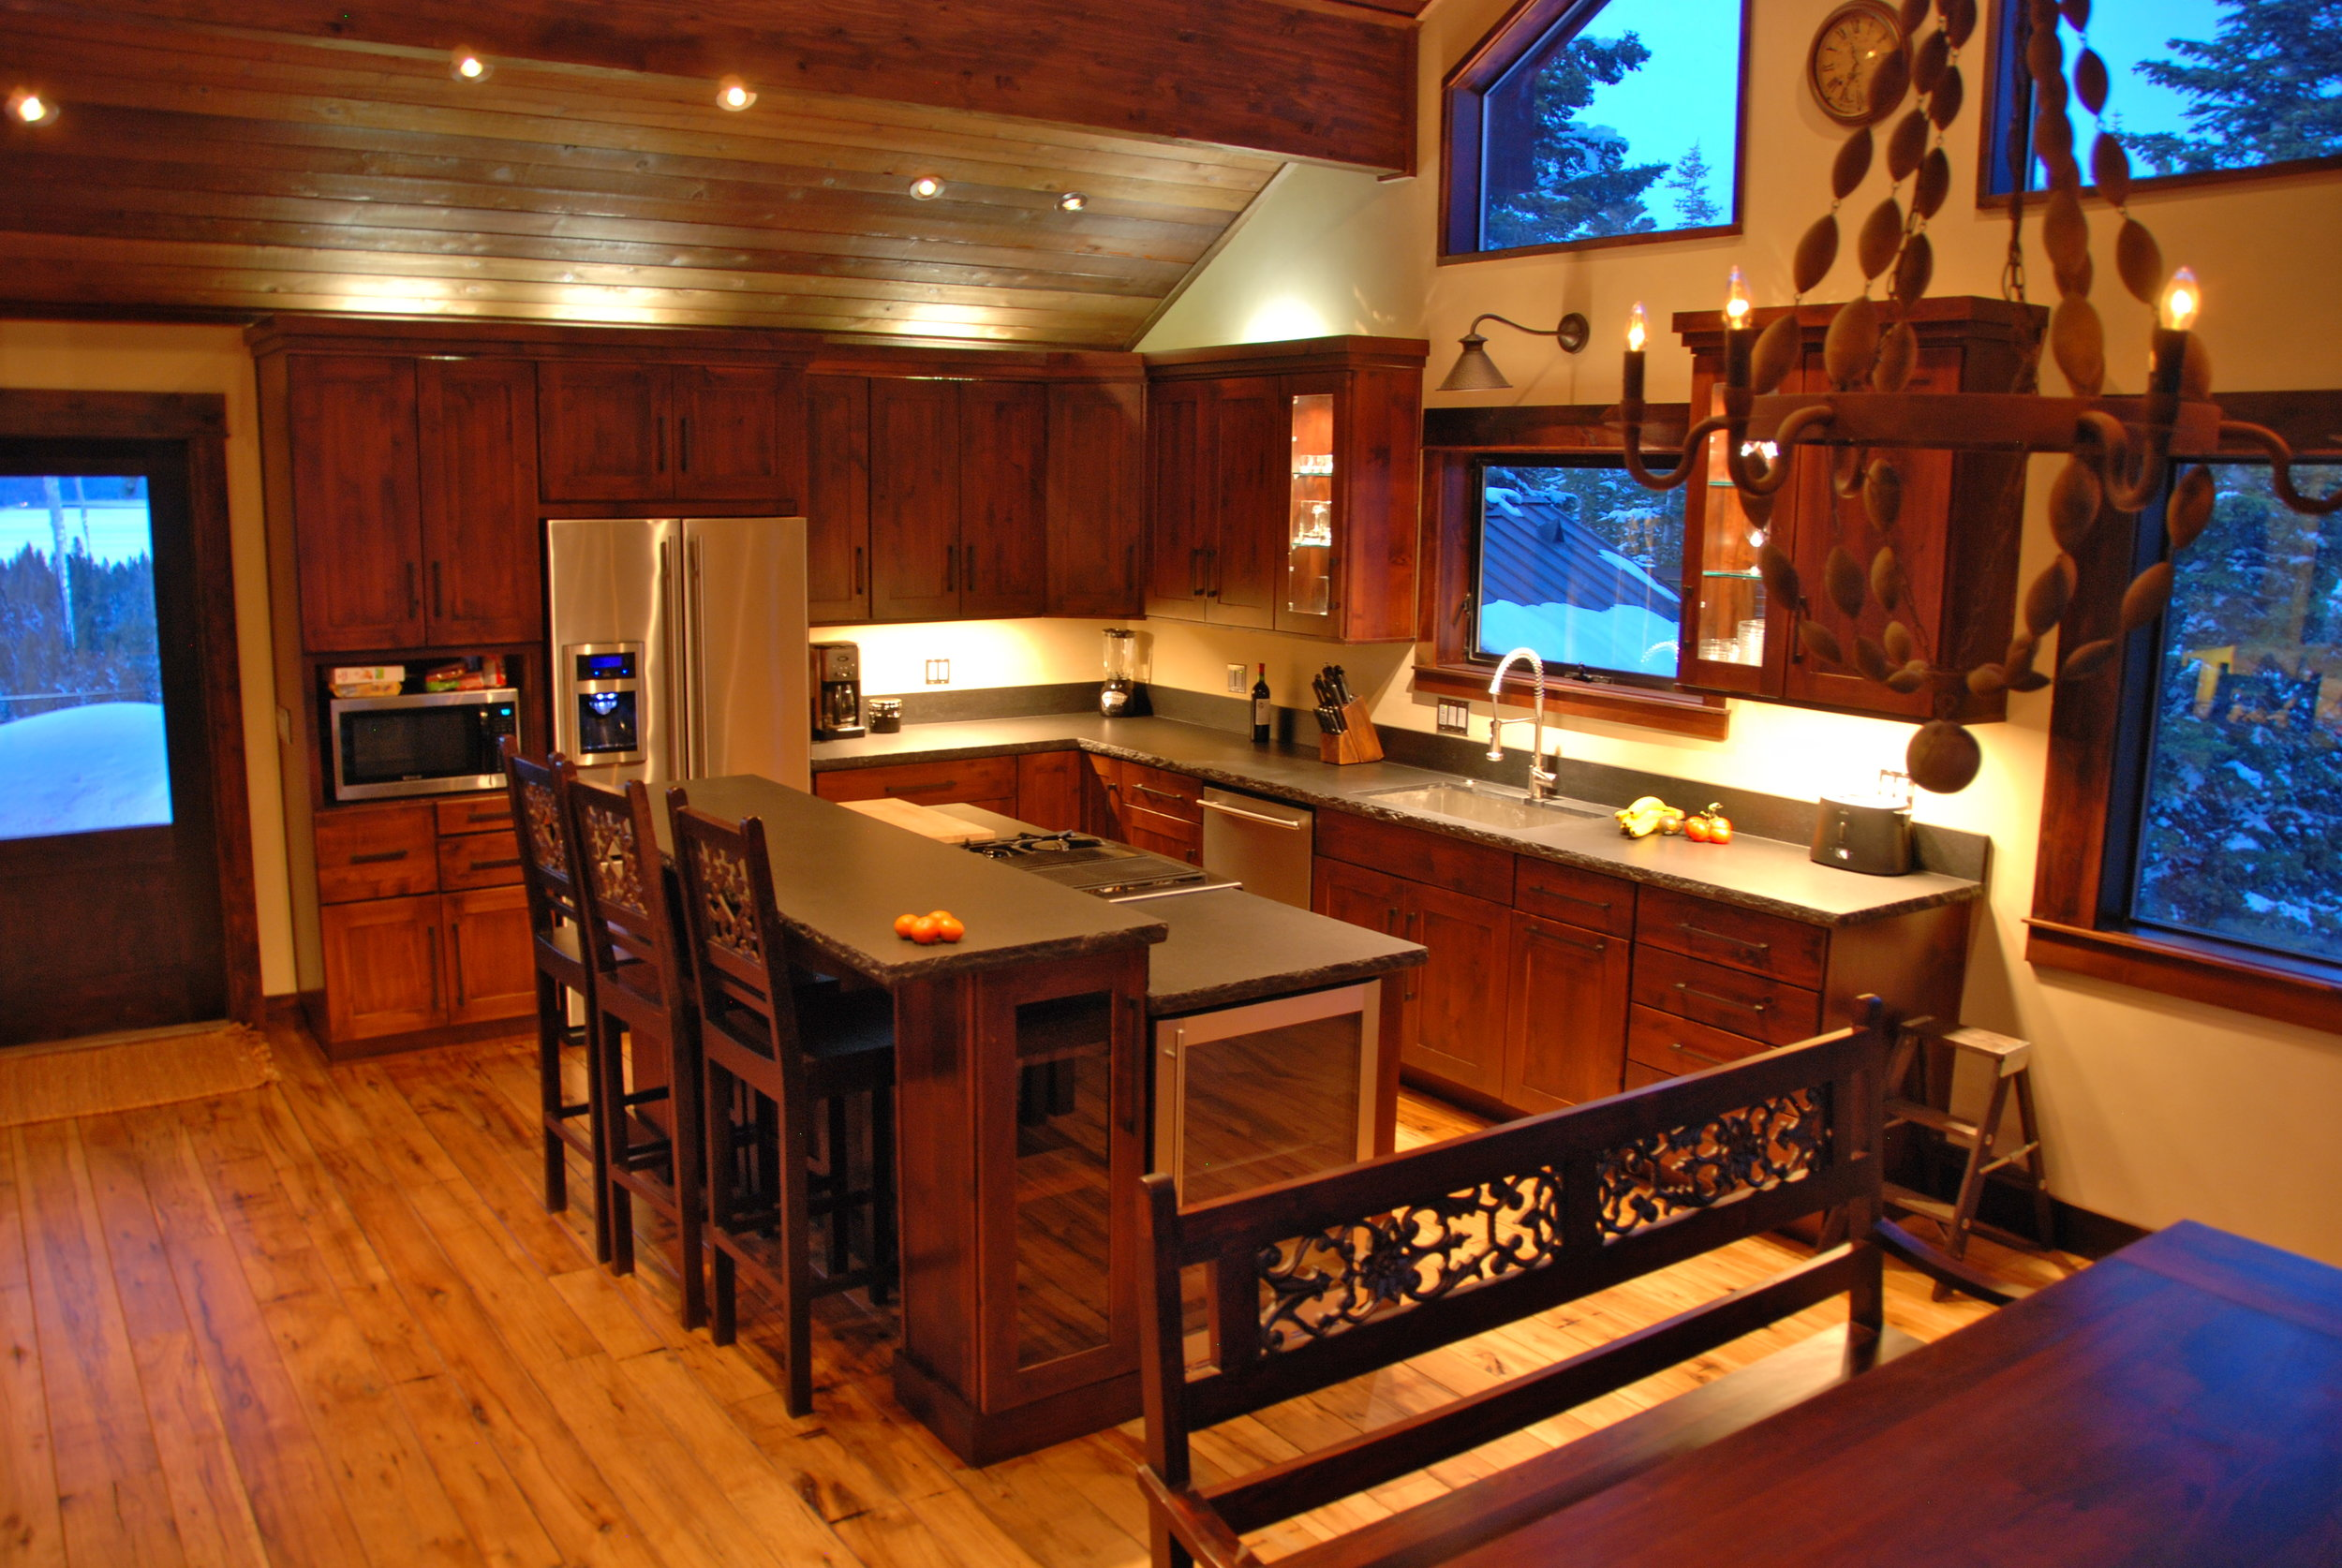 Lake Tahoe Kitchen.JPG